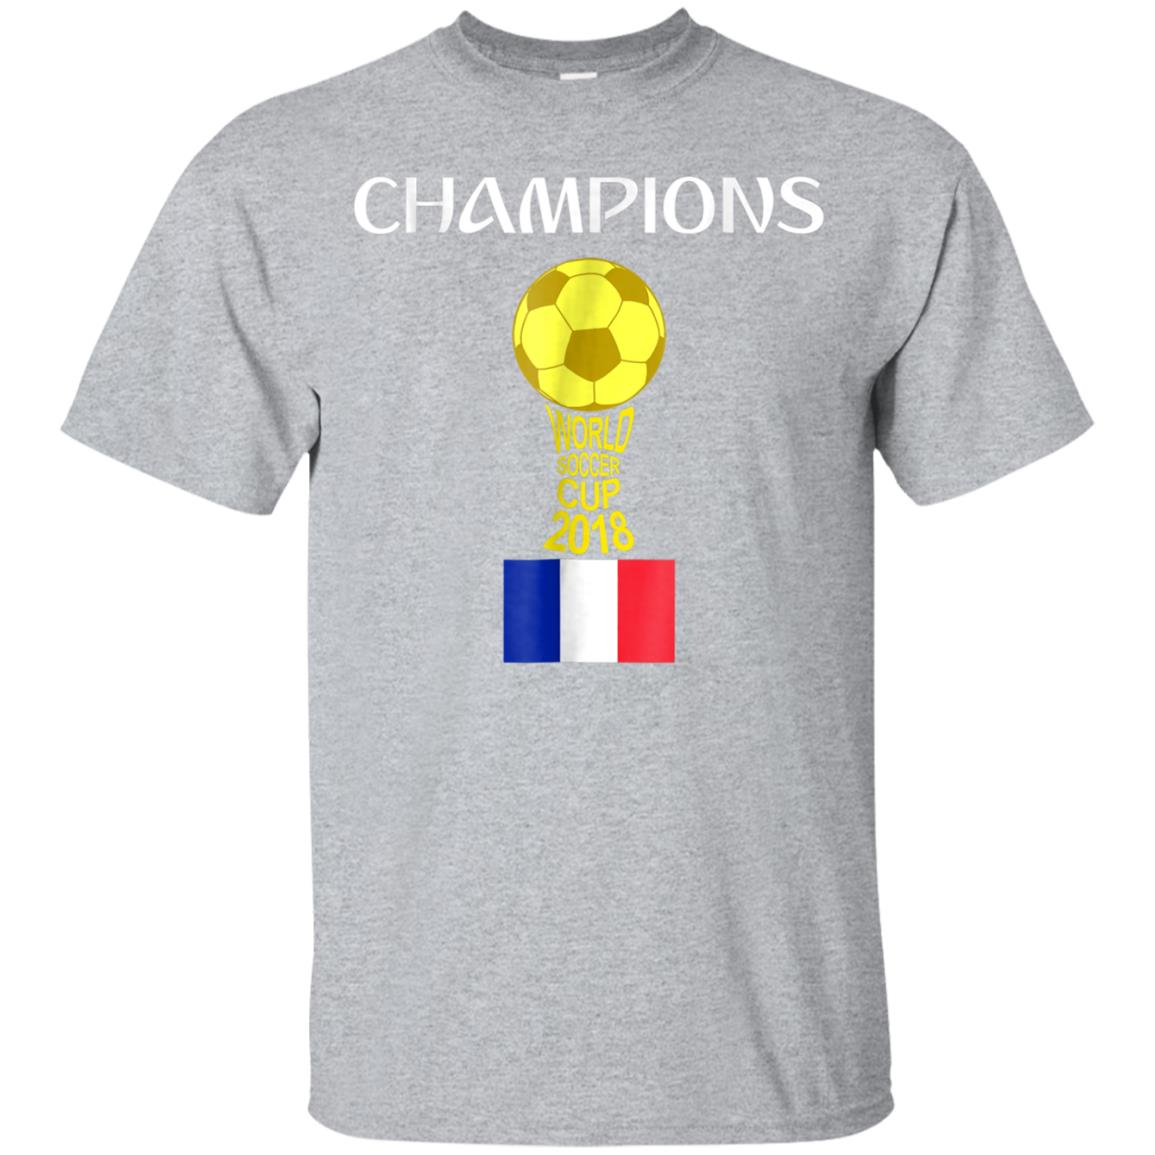 France World Champions Futball Cup 2018 T-Shirt 99promocode